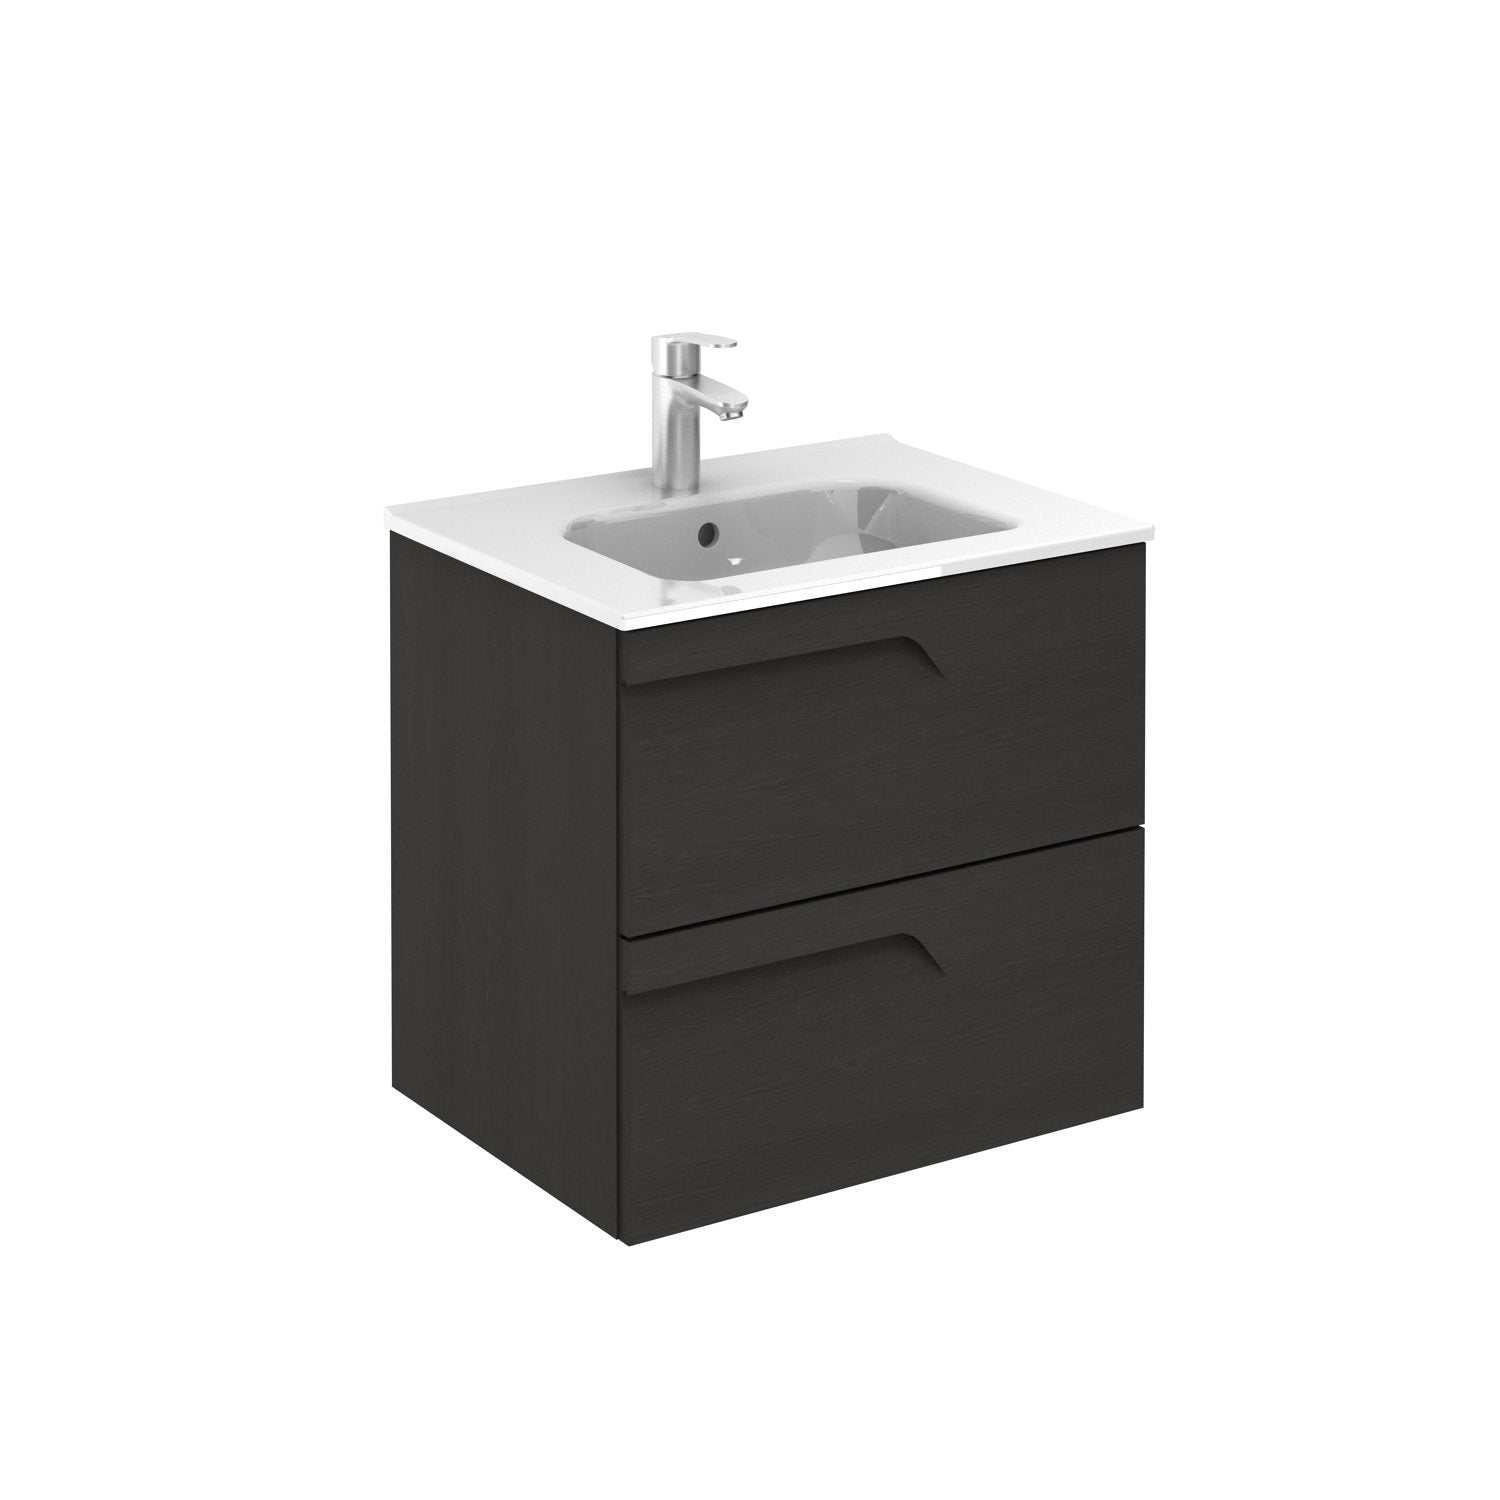 Sku 125721 123341 Item 125721 123341 Brand Royo Vitale 24 Inches Wall Mounted Modern Bathroom Vanity 2 Drawer Wenge With Basin Bathroom Vanities And Sink Consoles Royo Wenge 1100 00 1200 00 Wall Mounted Engineered Wood Ceramic 20 To 24